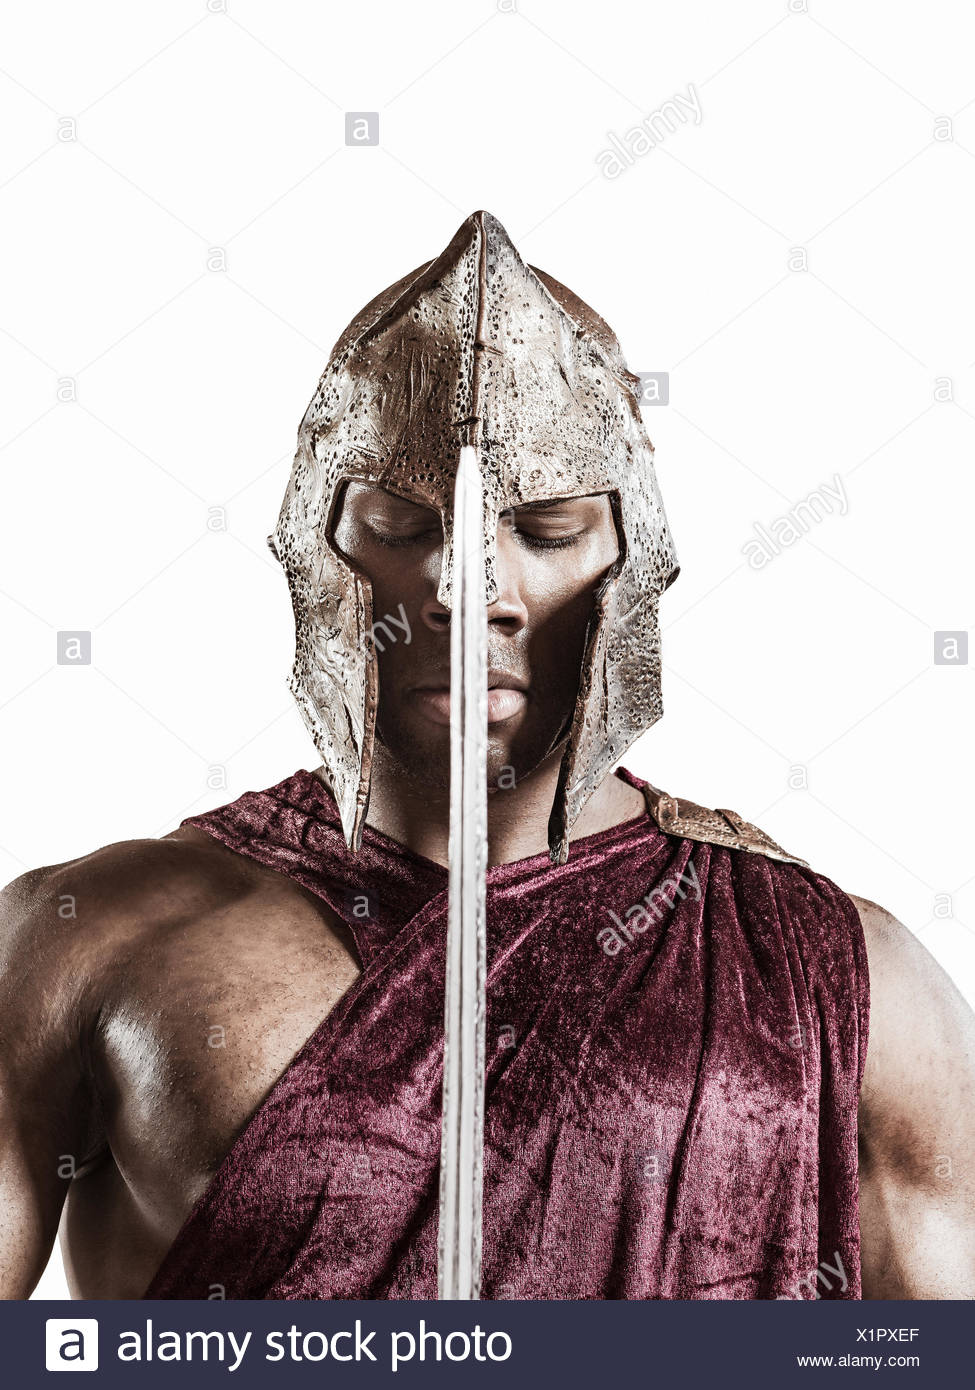 Studio portrait of poised young man dressed as gladiator with helmet and sword - Stock Image